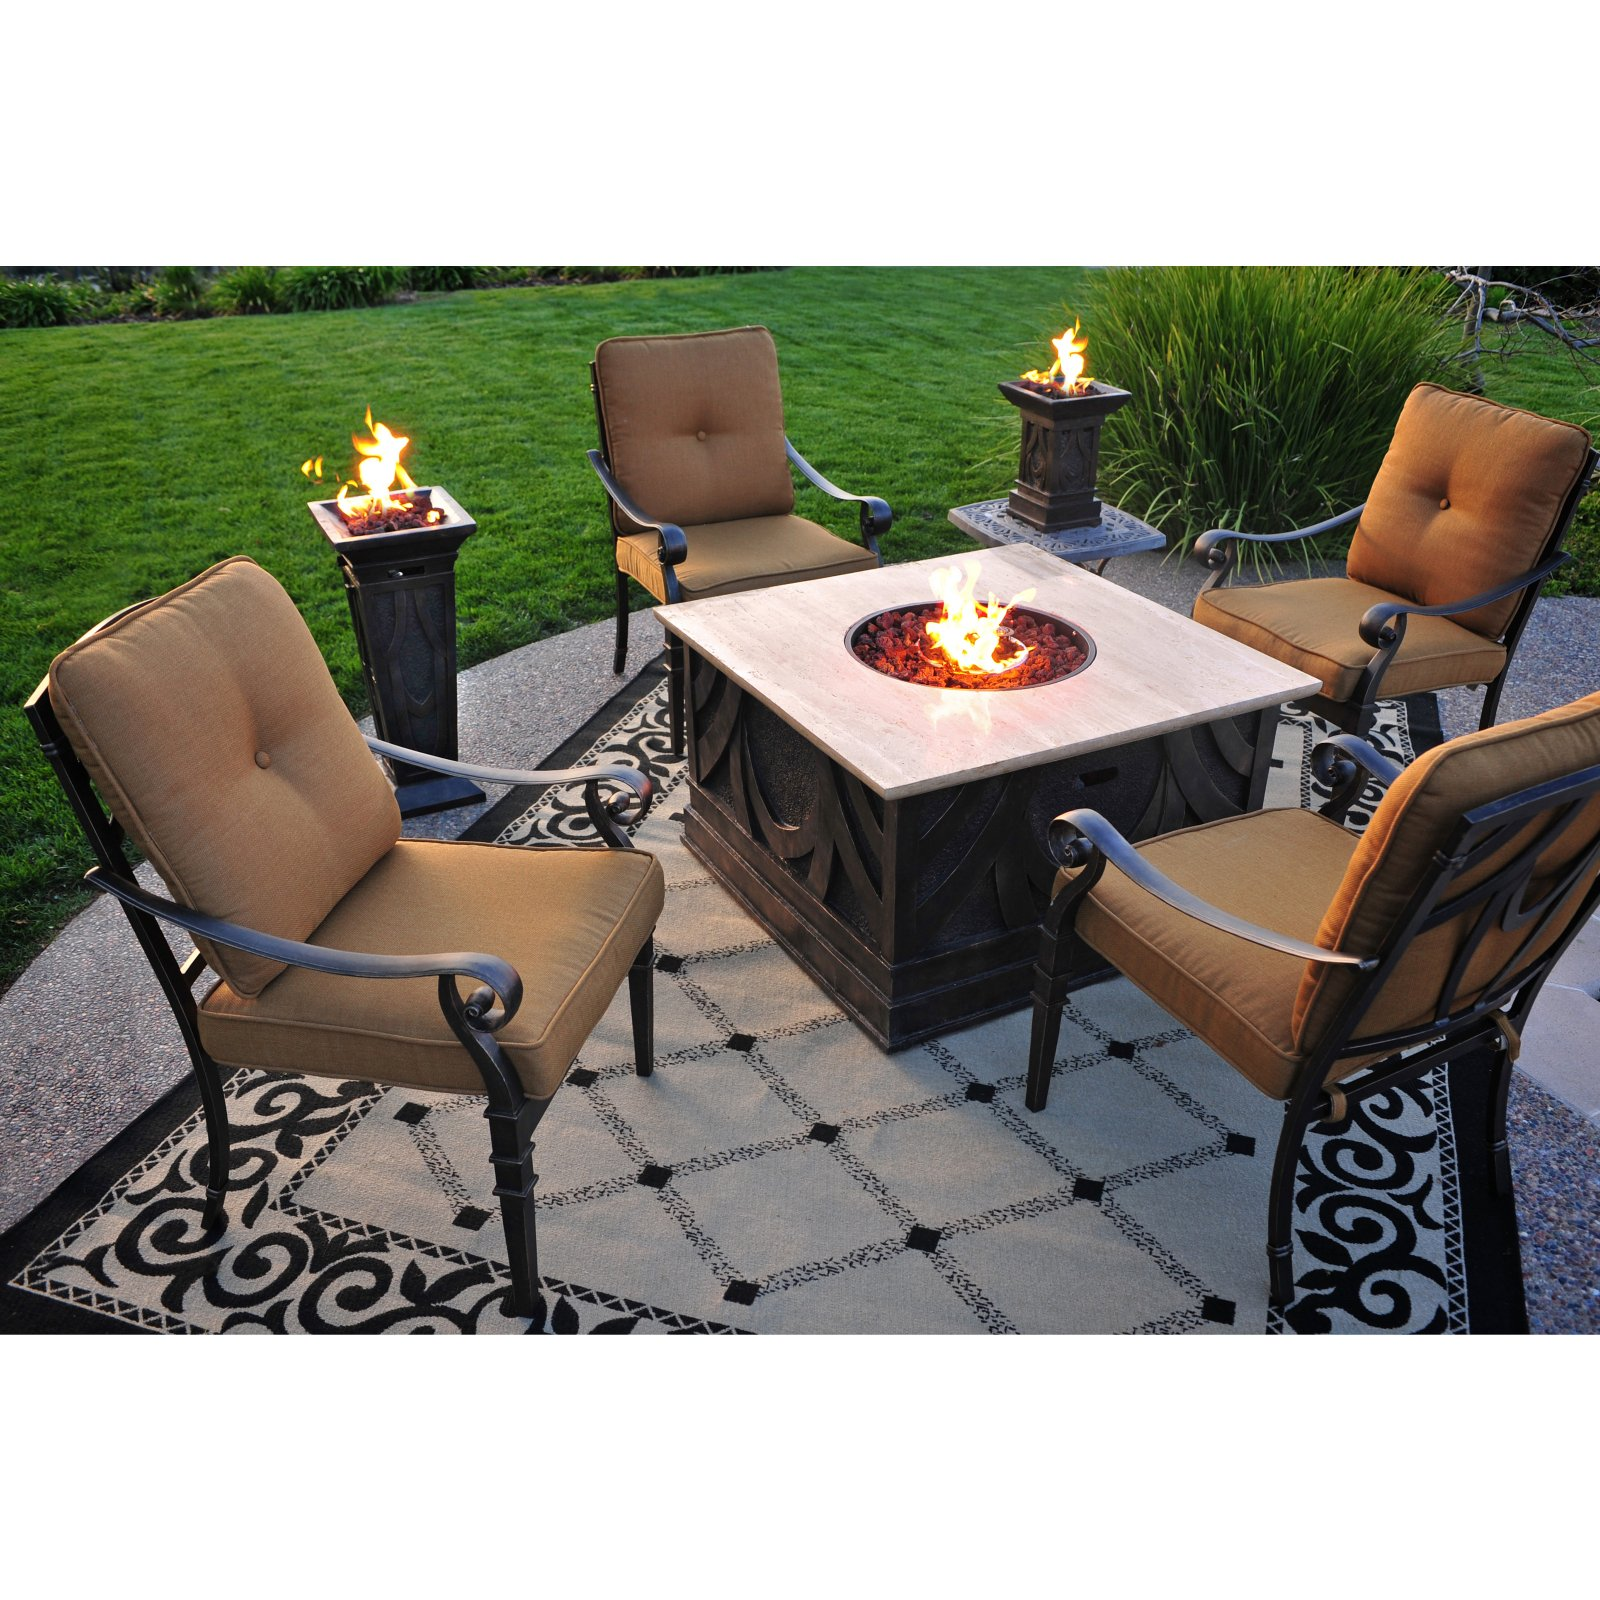 How To Make The Most Out Of Your Outdoor Fire Pits Thebestoutdoorfirepits